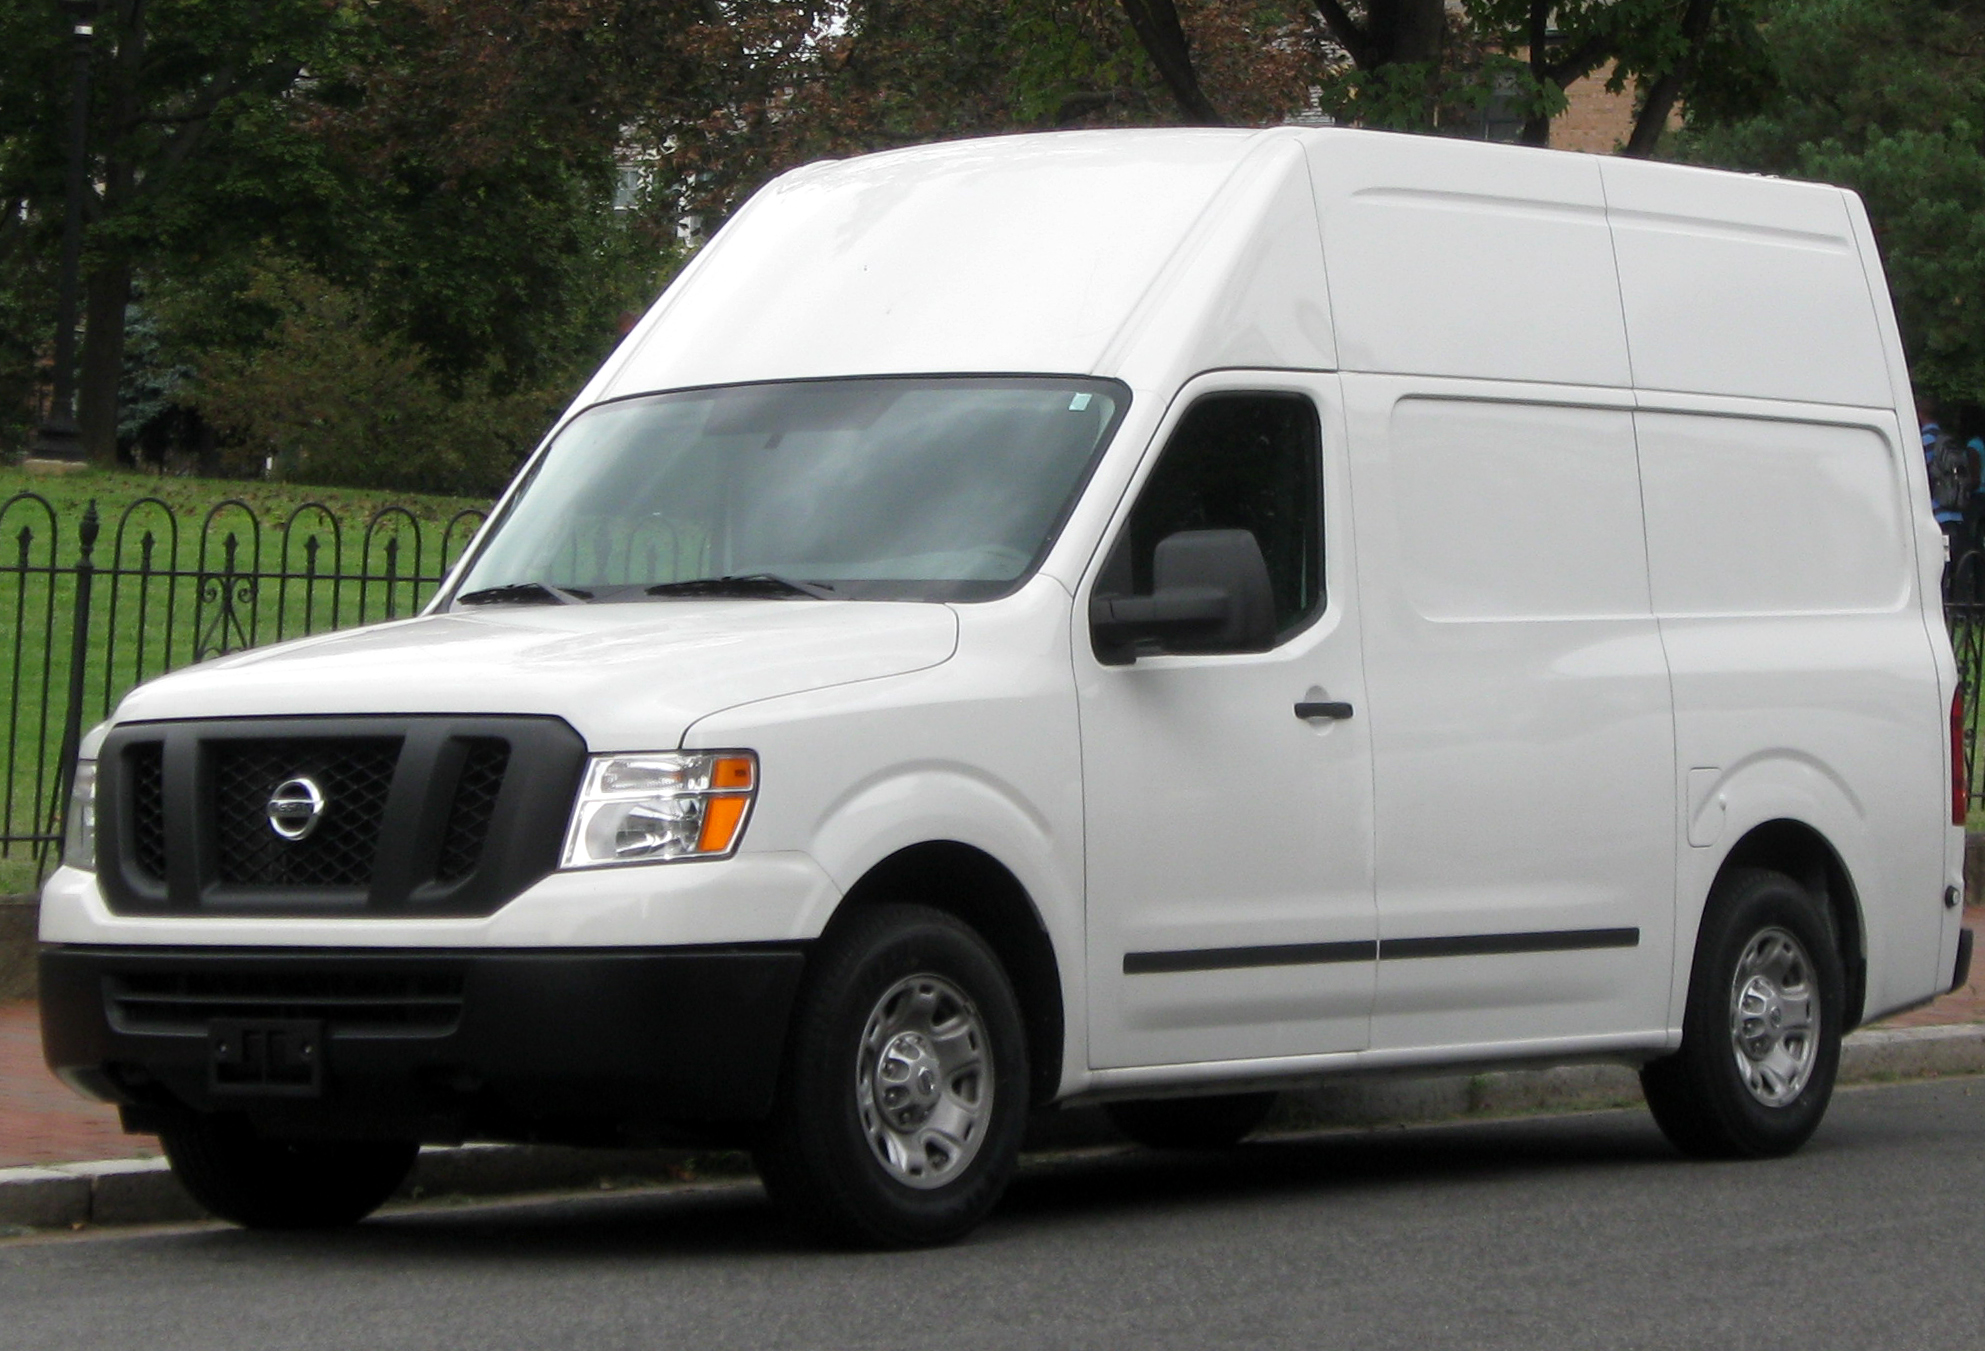 Debating on whether to purchase a used Nissan NV 2500 High Roof to